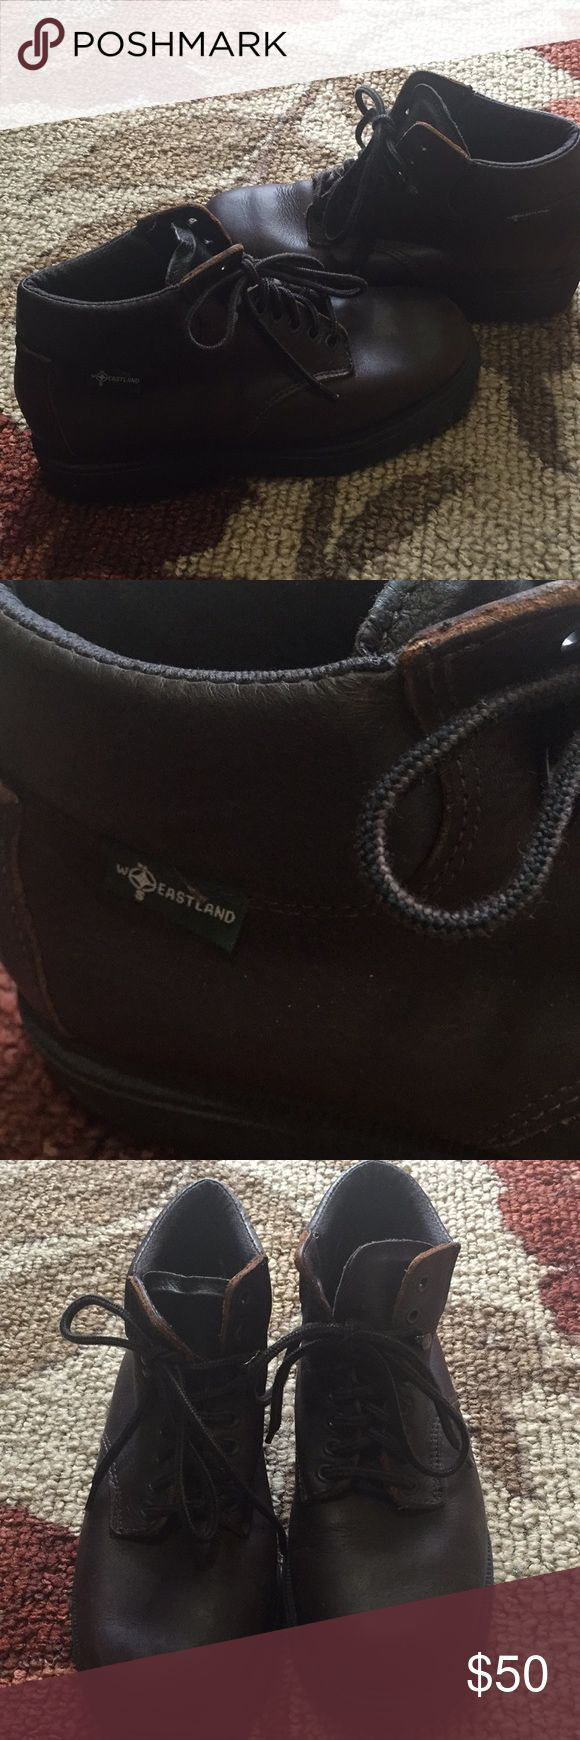 Vintage Eastland boots Vintage leather boots in excellent condition! Size 7.5, brown leather. Eastland Shoes Ankle Boots & Booties